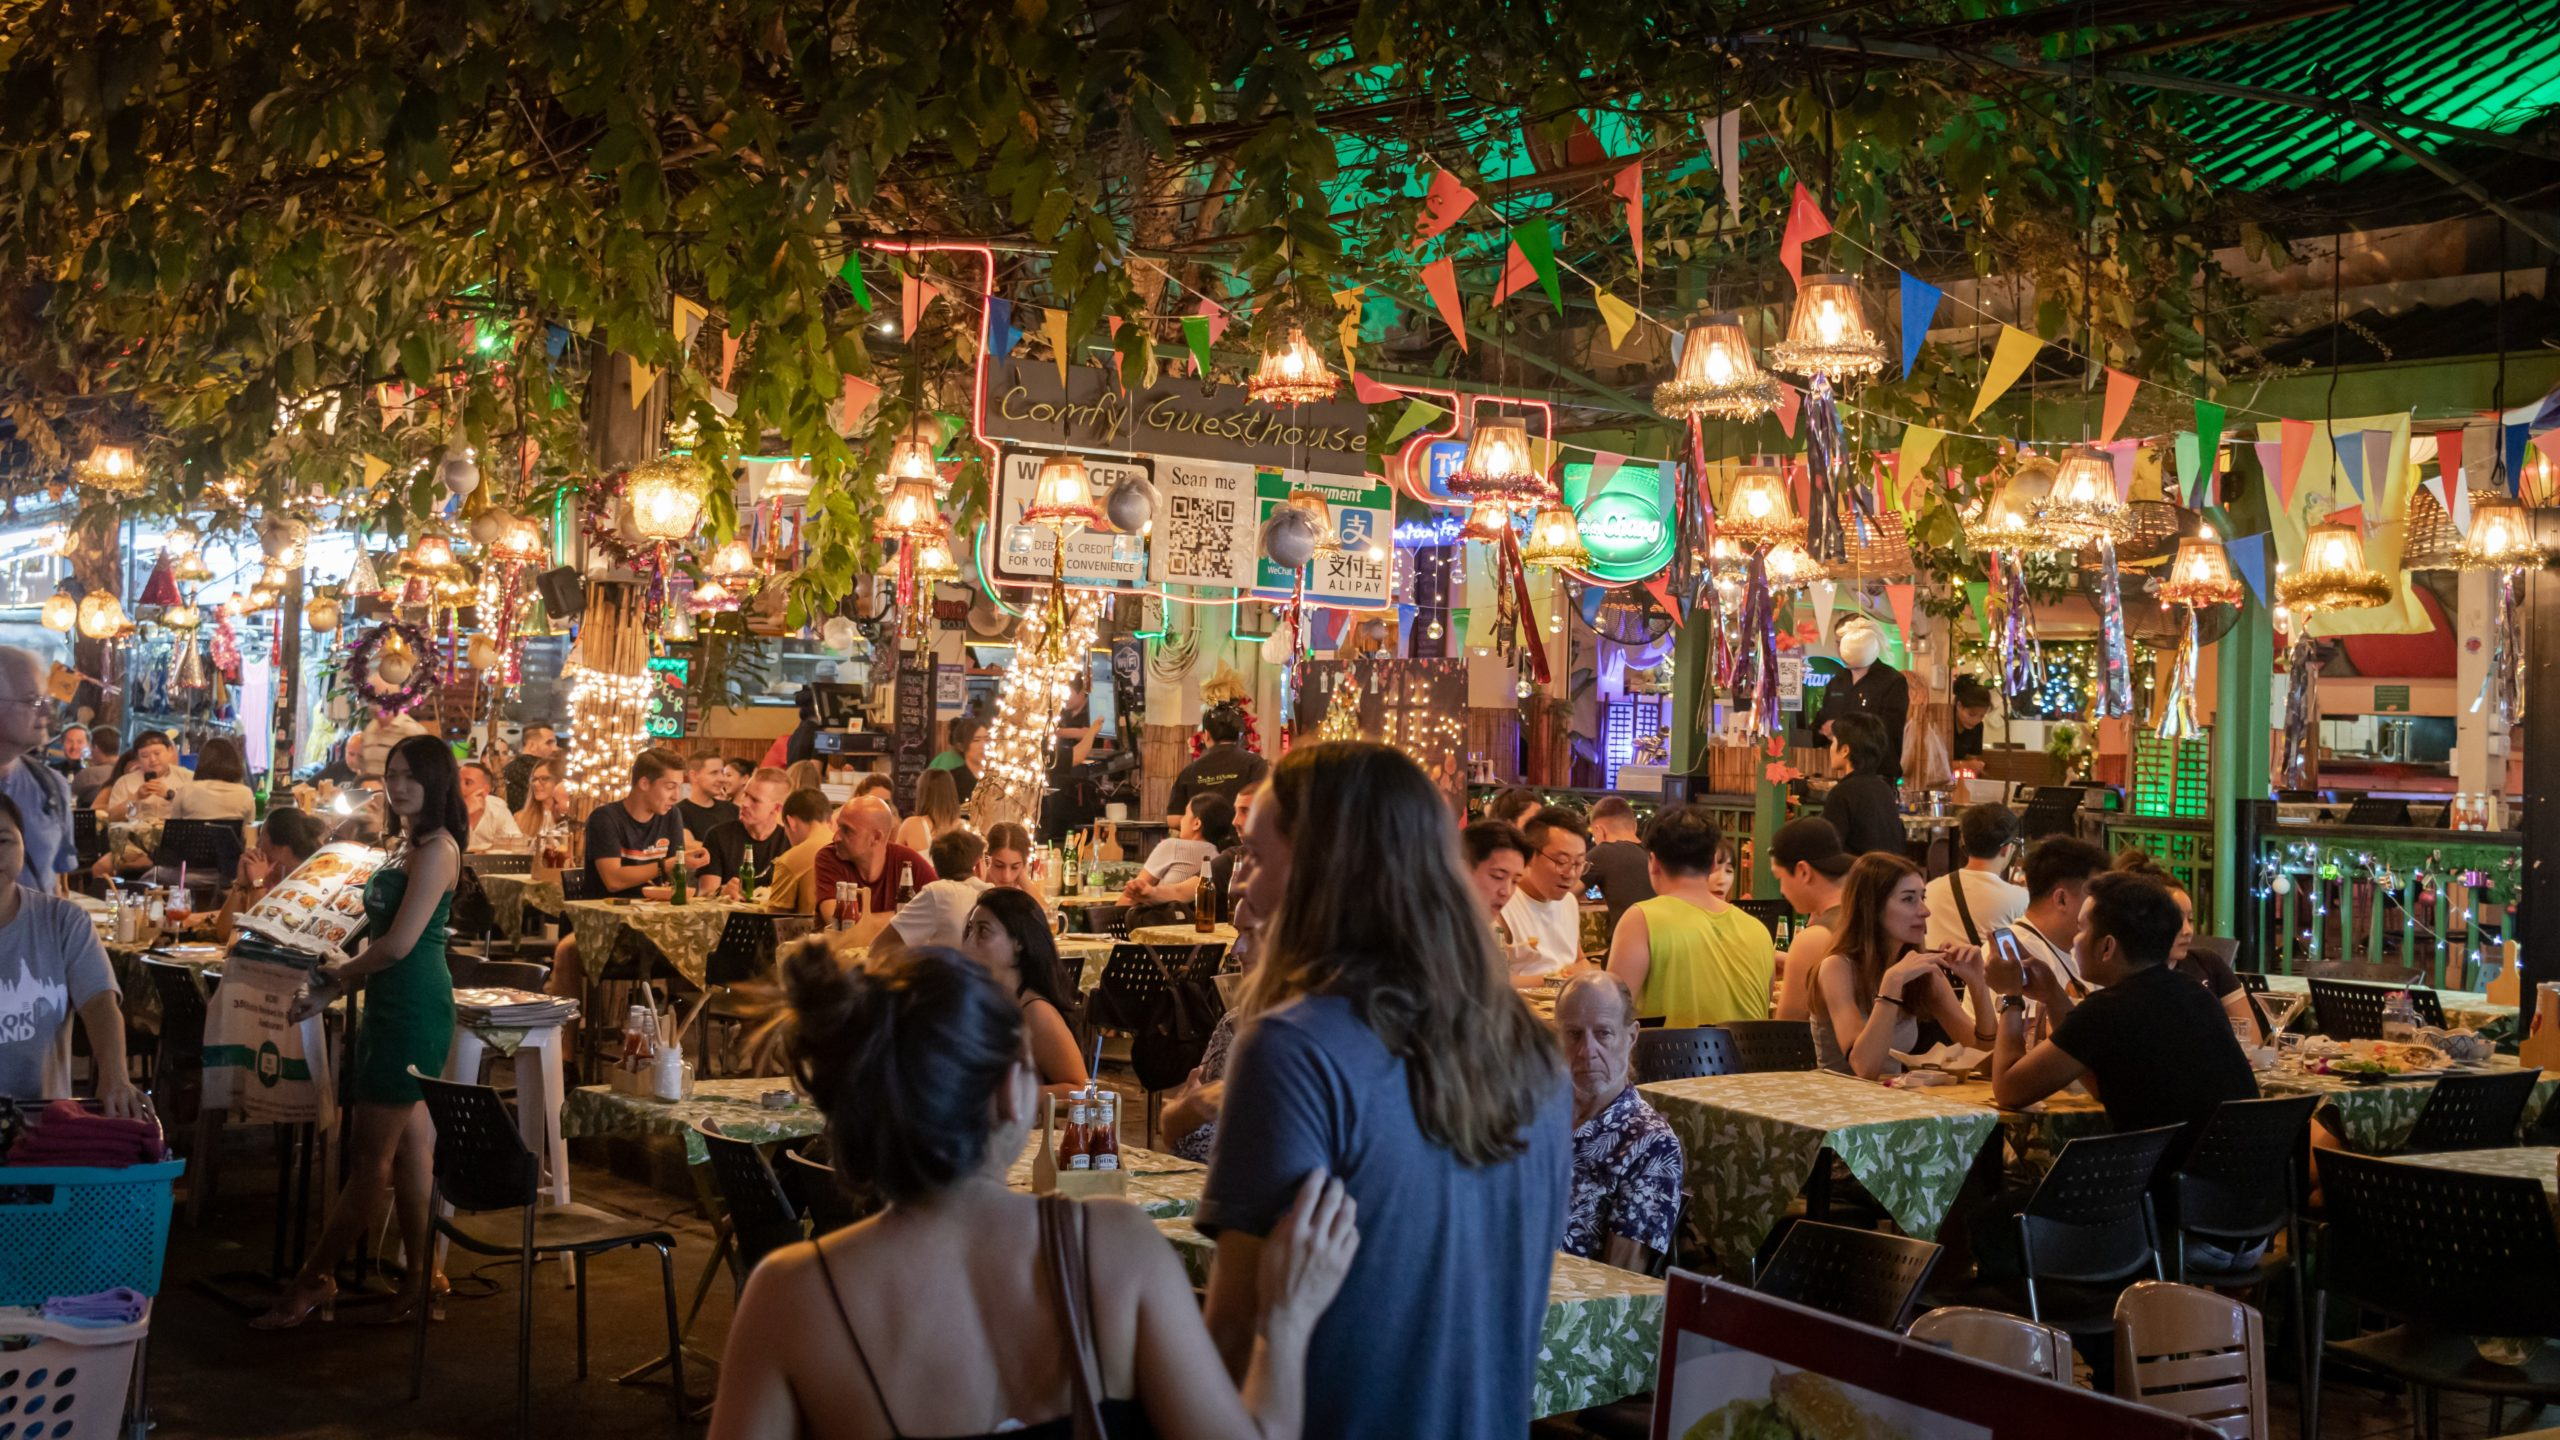 People in an open air restaurant at night time.